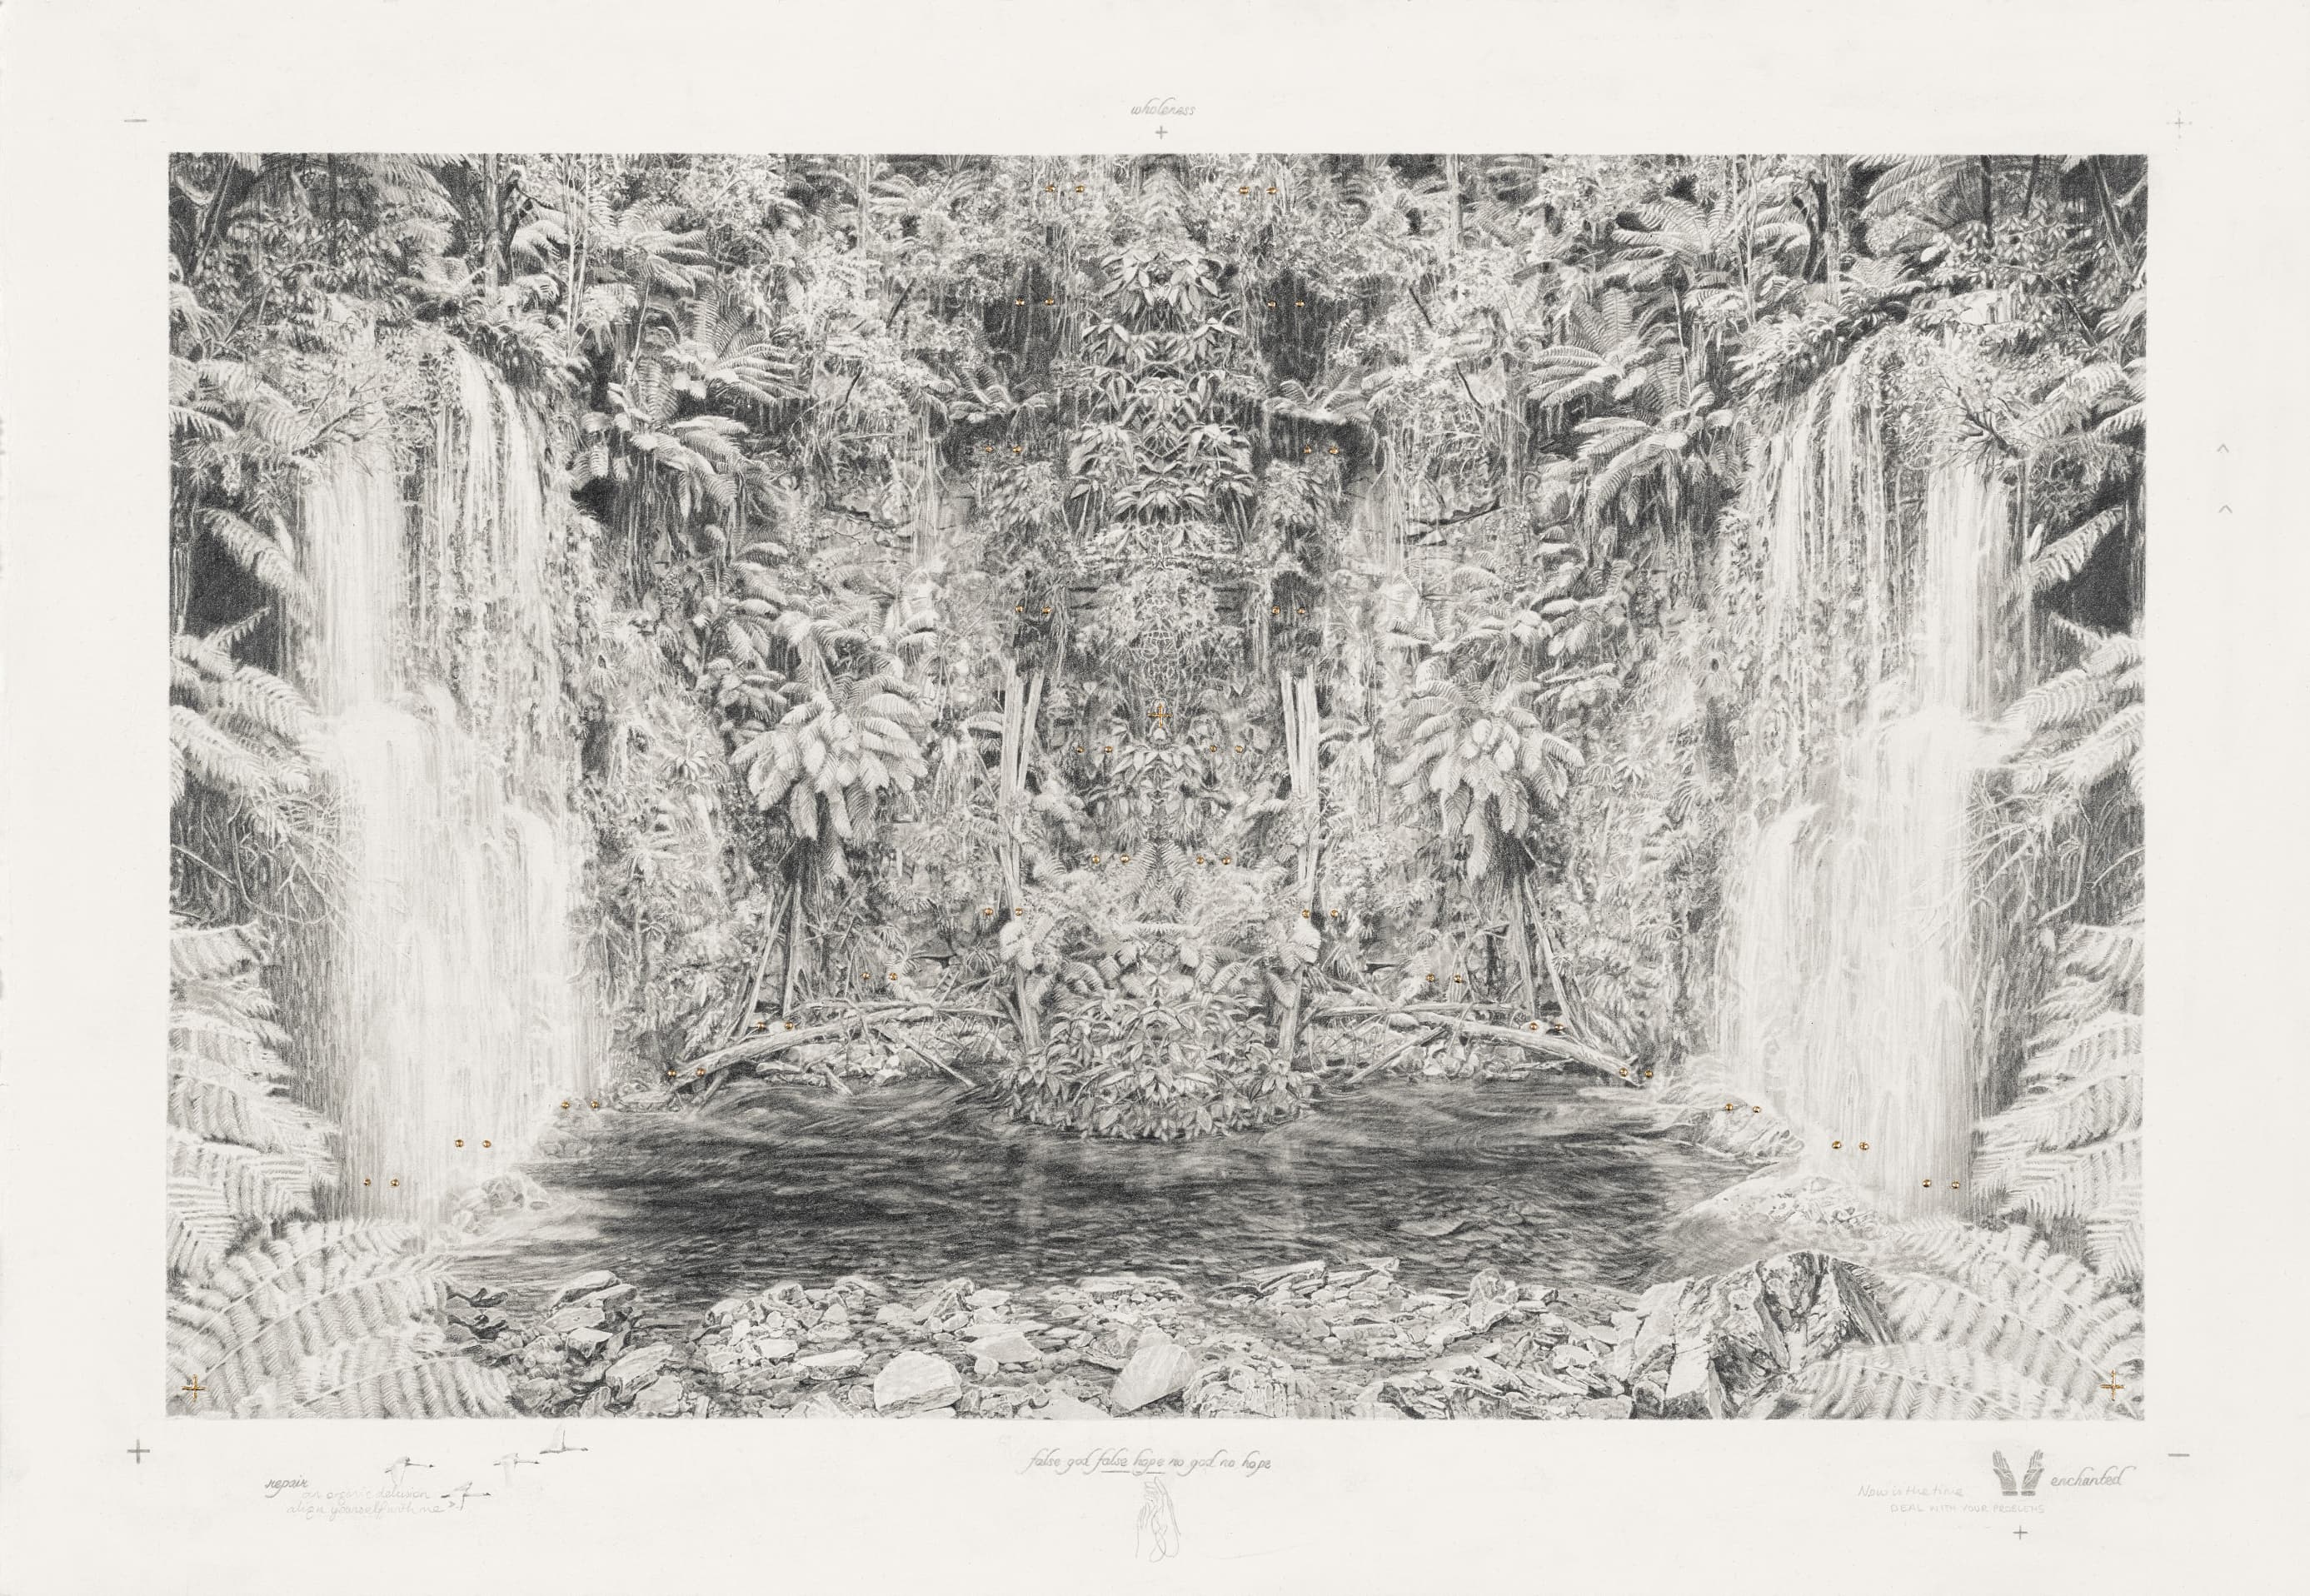 Becc Ország, Hope (align yourself with me), 2017, graphite pencil and 24kt gold leaf on paper, 52x75cm